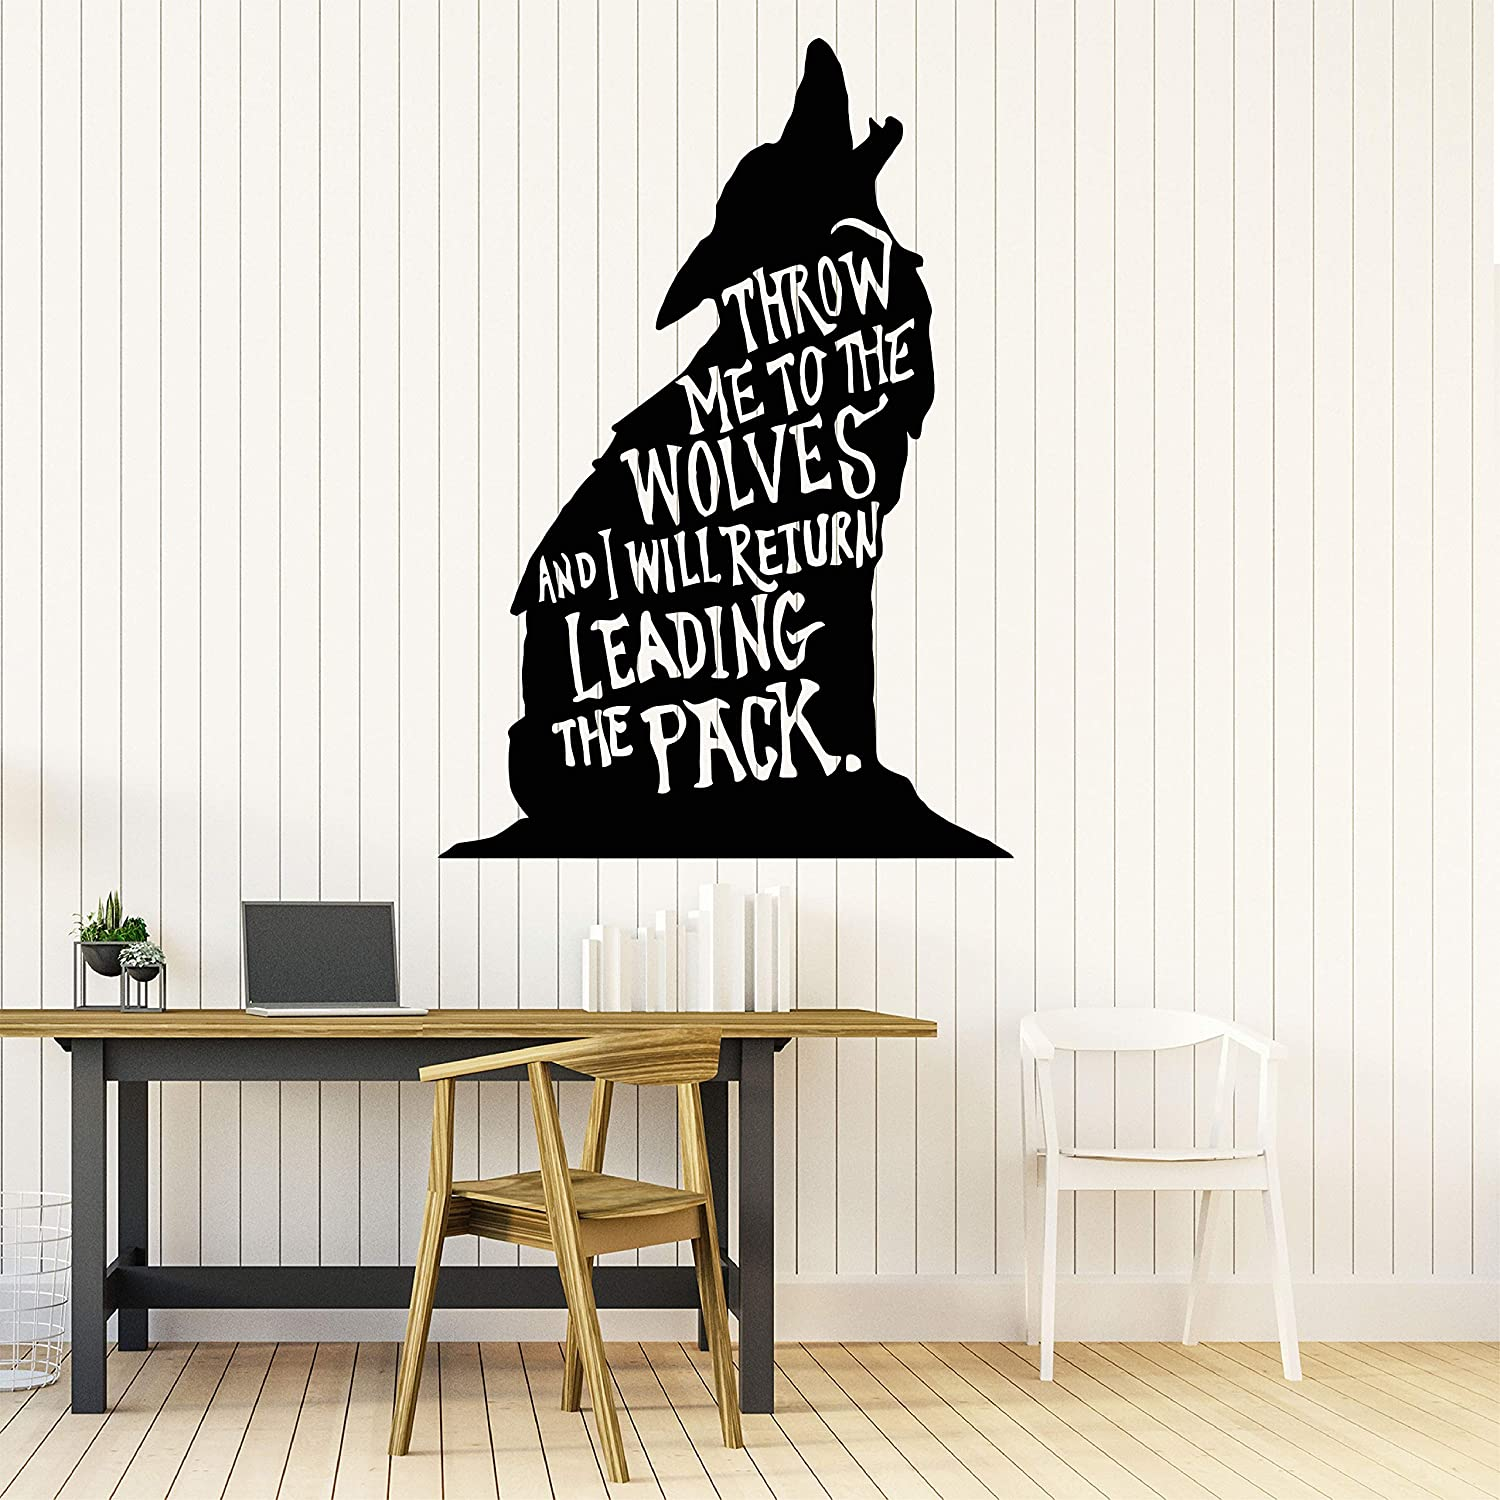 Amazon Com Wolf Wall Decals Room Decor Wolves Wall Art Vinyl Stickers Wolf Decorations Pictures For Home Bedroom Kids Nursery Room Animals Wildlife Forest Safari Jungle Savannah Wo015 Home Kitchen